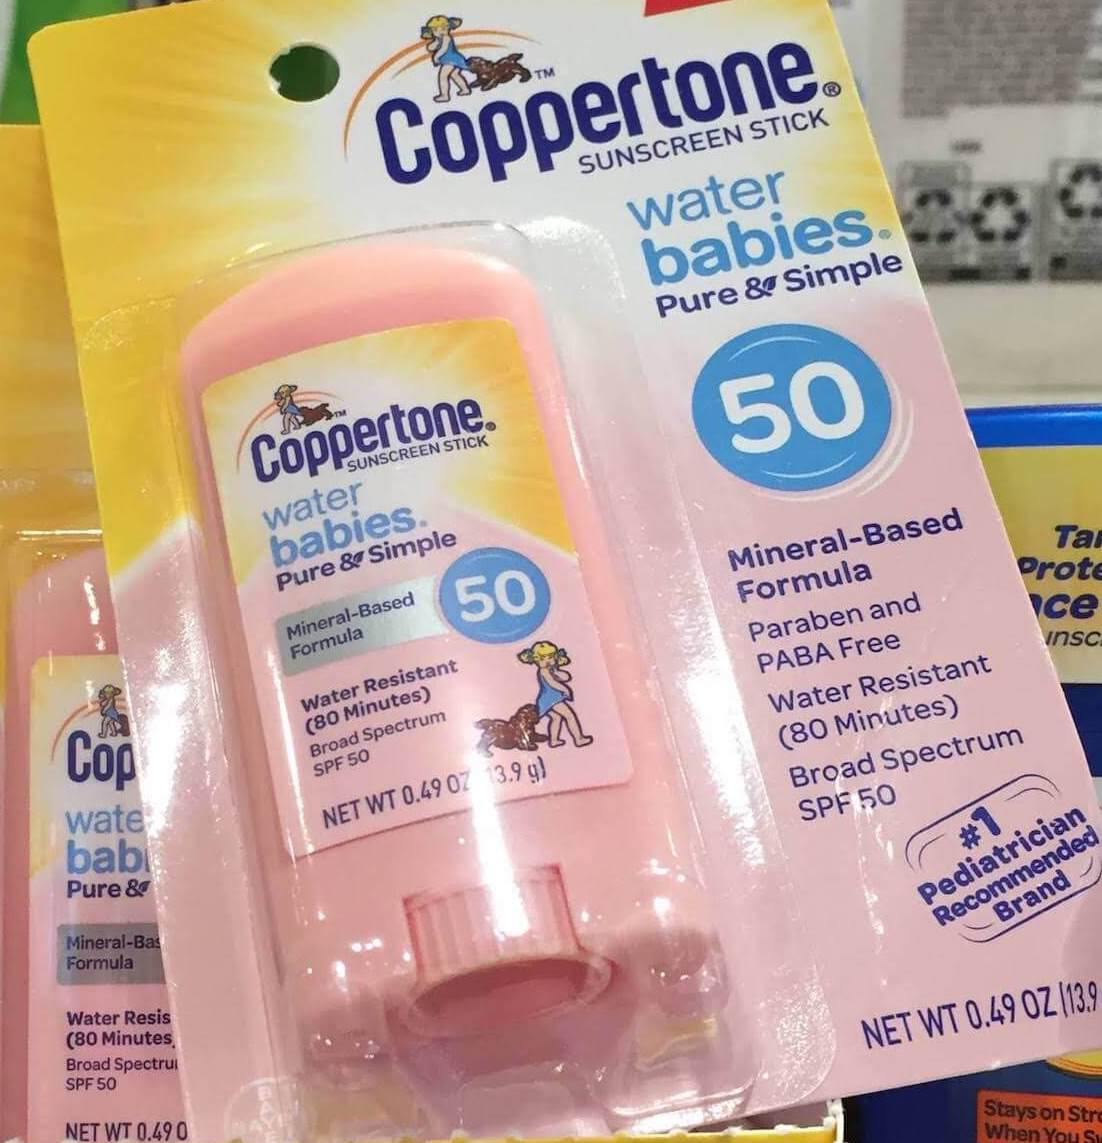 best mineral sunscreen babies - coppertone water babies pure and simple spf 50 review